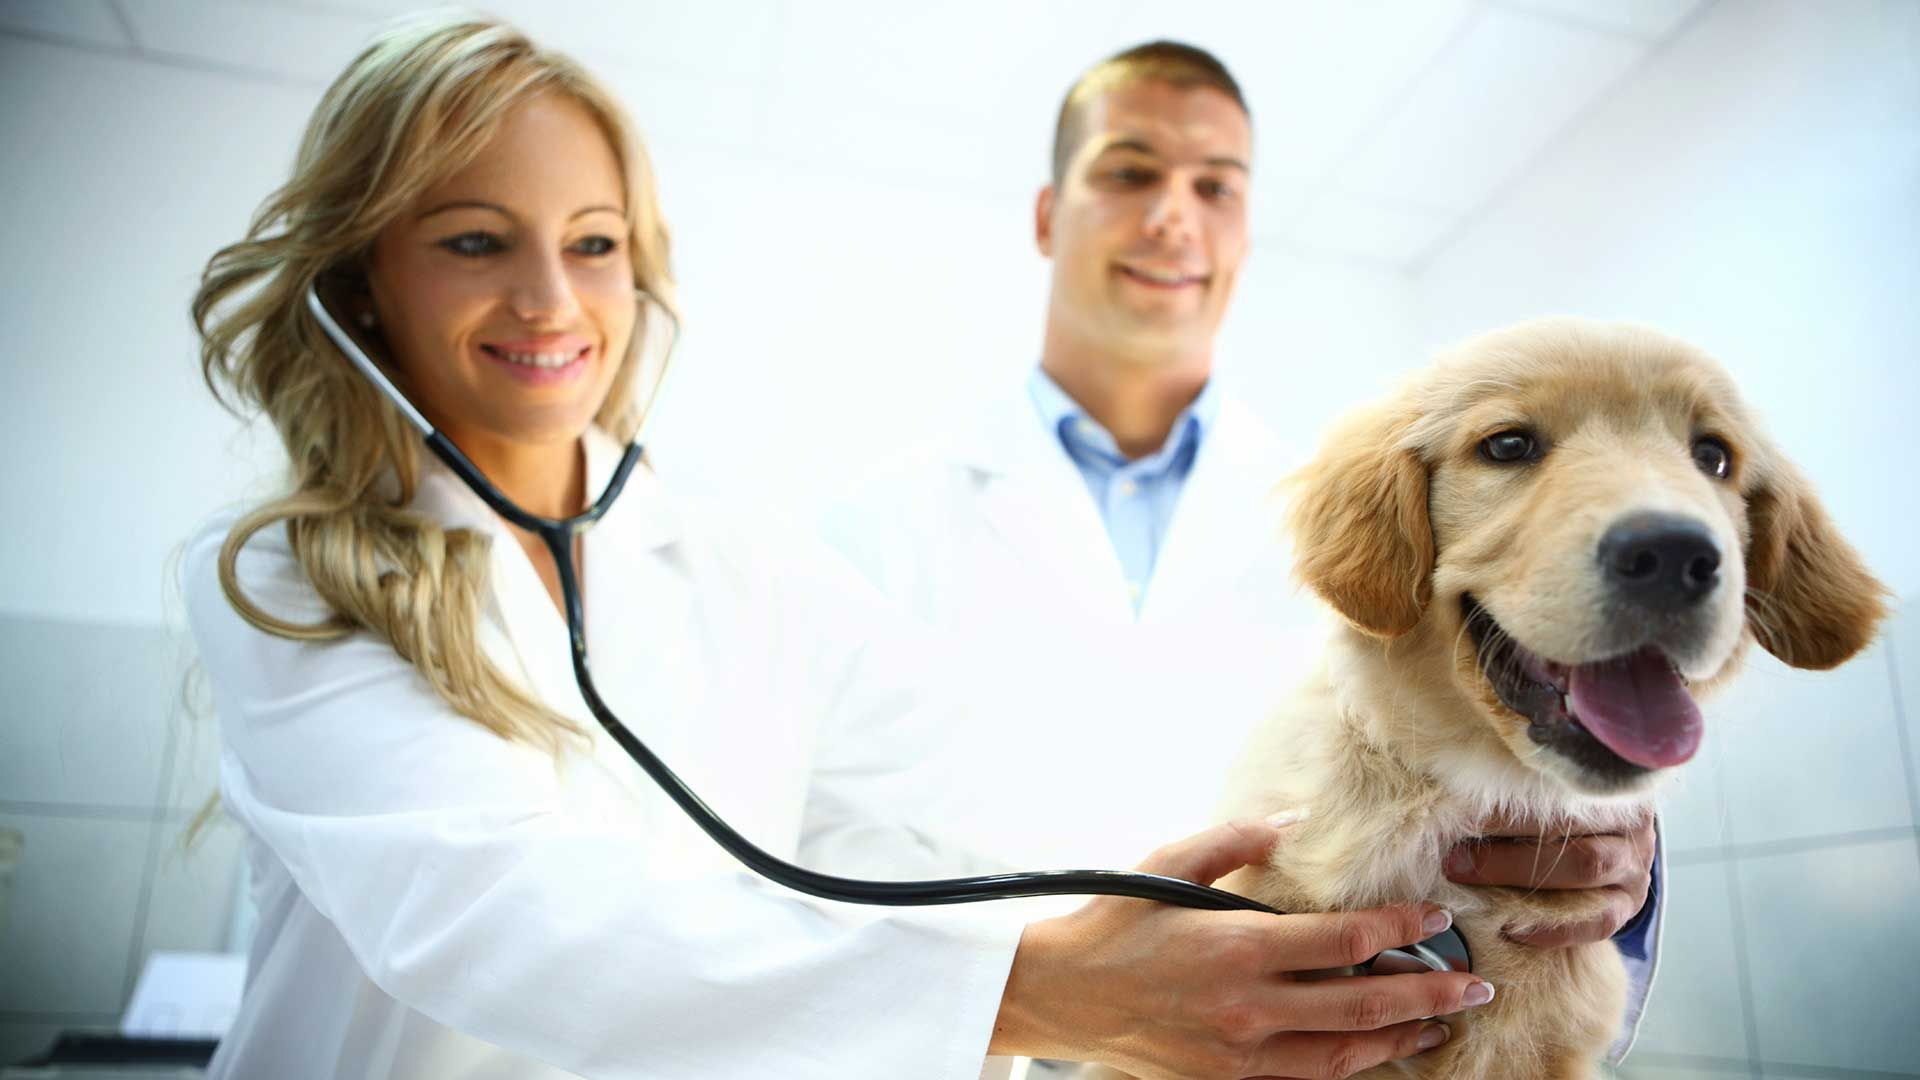 Pets Vets And Debts The Nature Of Things Science Wildlife And Technology Pets Pet Vet Veterinary Care